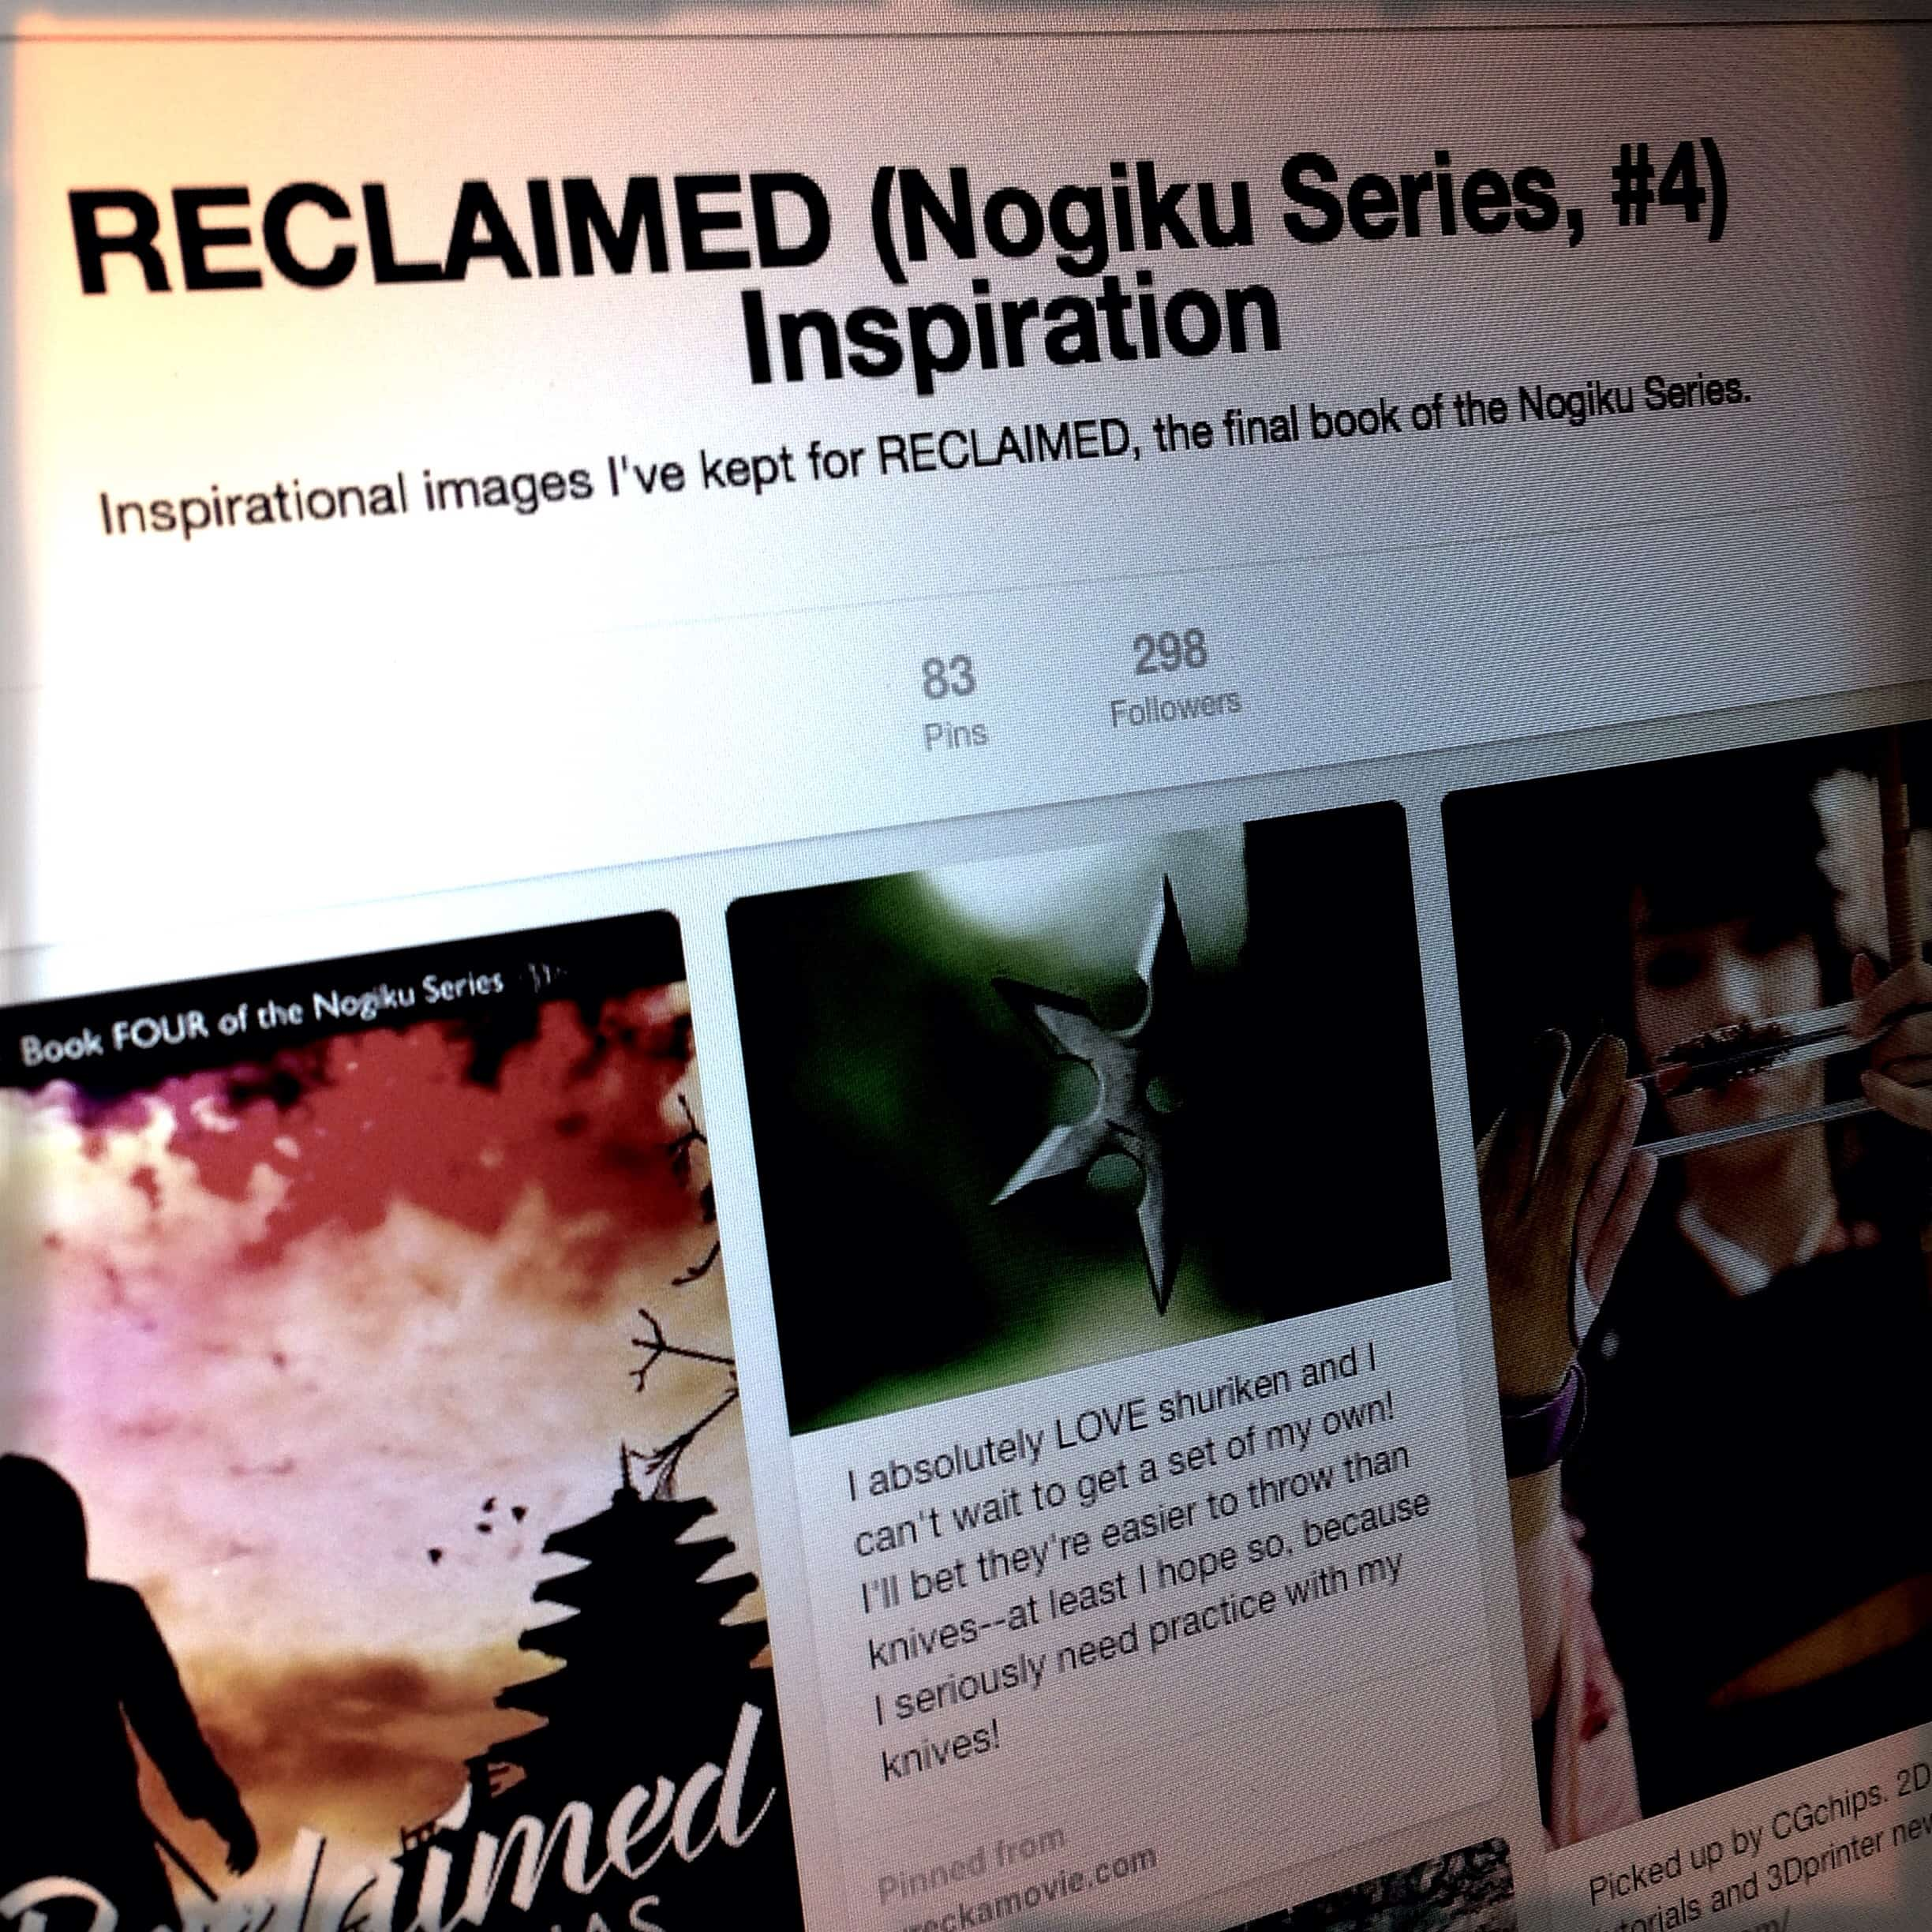 Check out the RECLAIMED Pinterest board and all the images and videos that inspired the last book of the series.